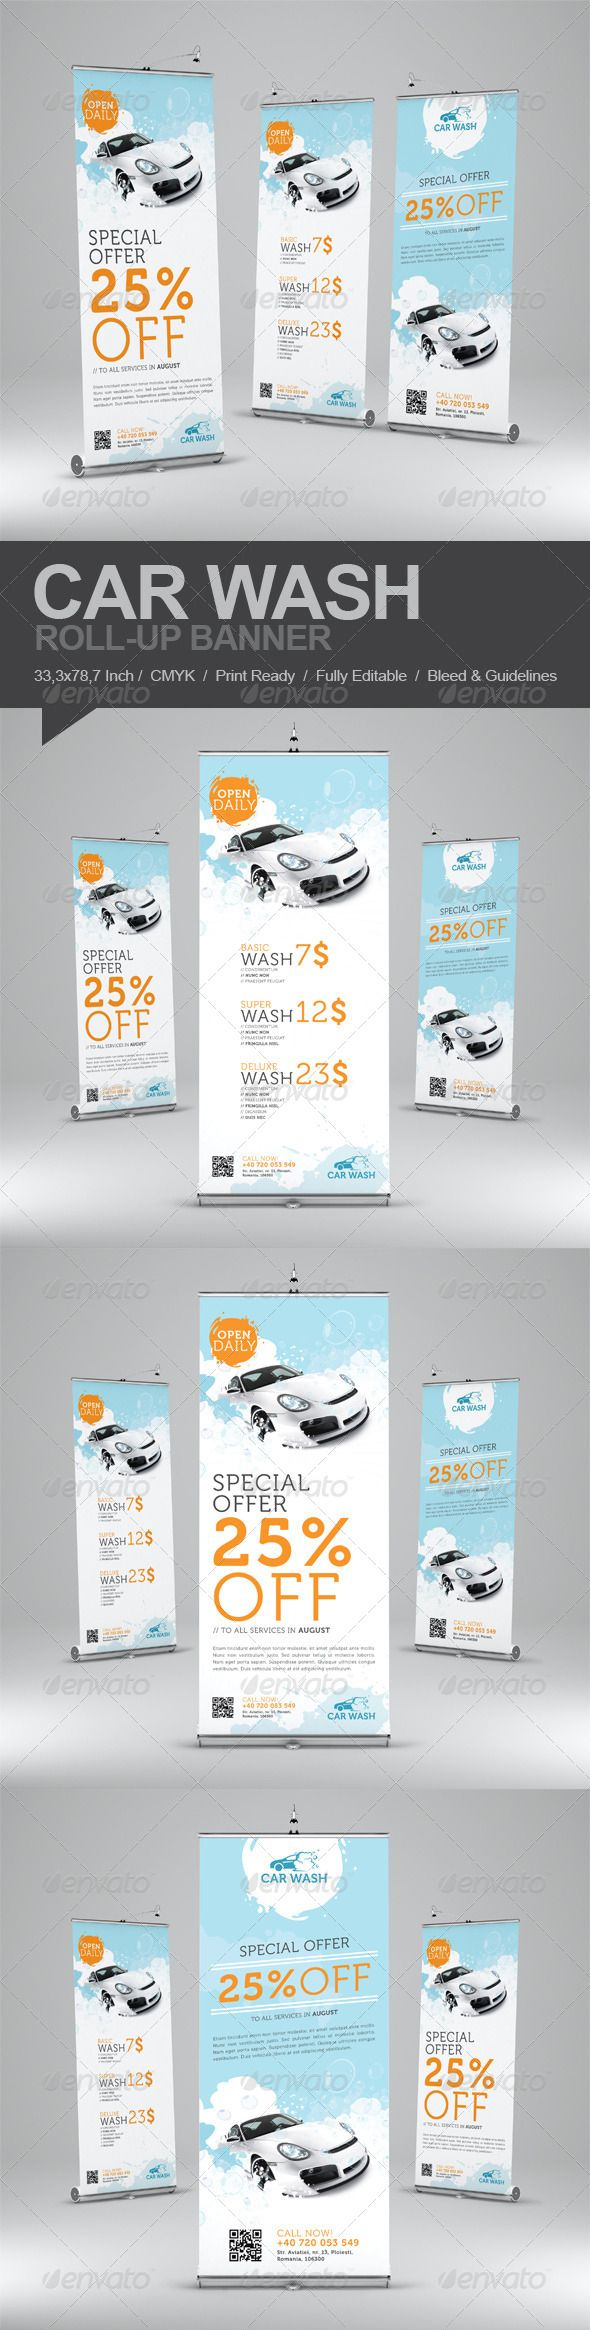 Car Wash Roll-Up Banner  #GraphicRiver         Promote your business with a unique and creative roll-up banner template package.  	 Perfect for a wide range of car wash related businesses like: Car Wash & Auto Detailing Services or Car wash Equipment.  	 Simple to work with and highly customizable, it ca be easily adjusted to fit your needs.  	 Features:   33,3×78,7 inch (850×2000mm)  CMYK  150 dpi  Print